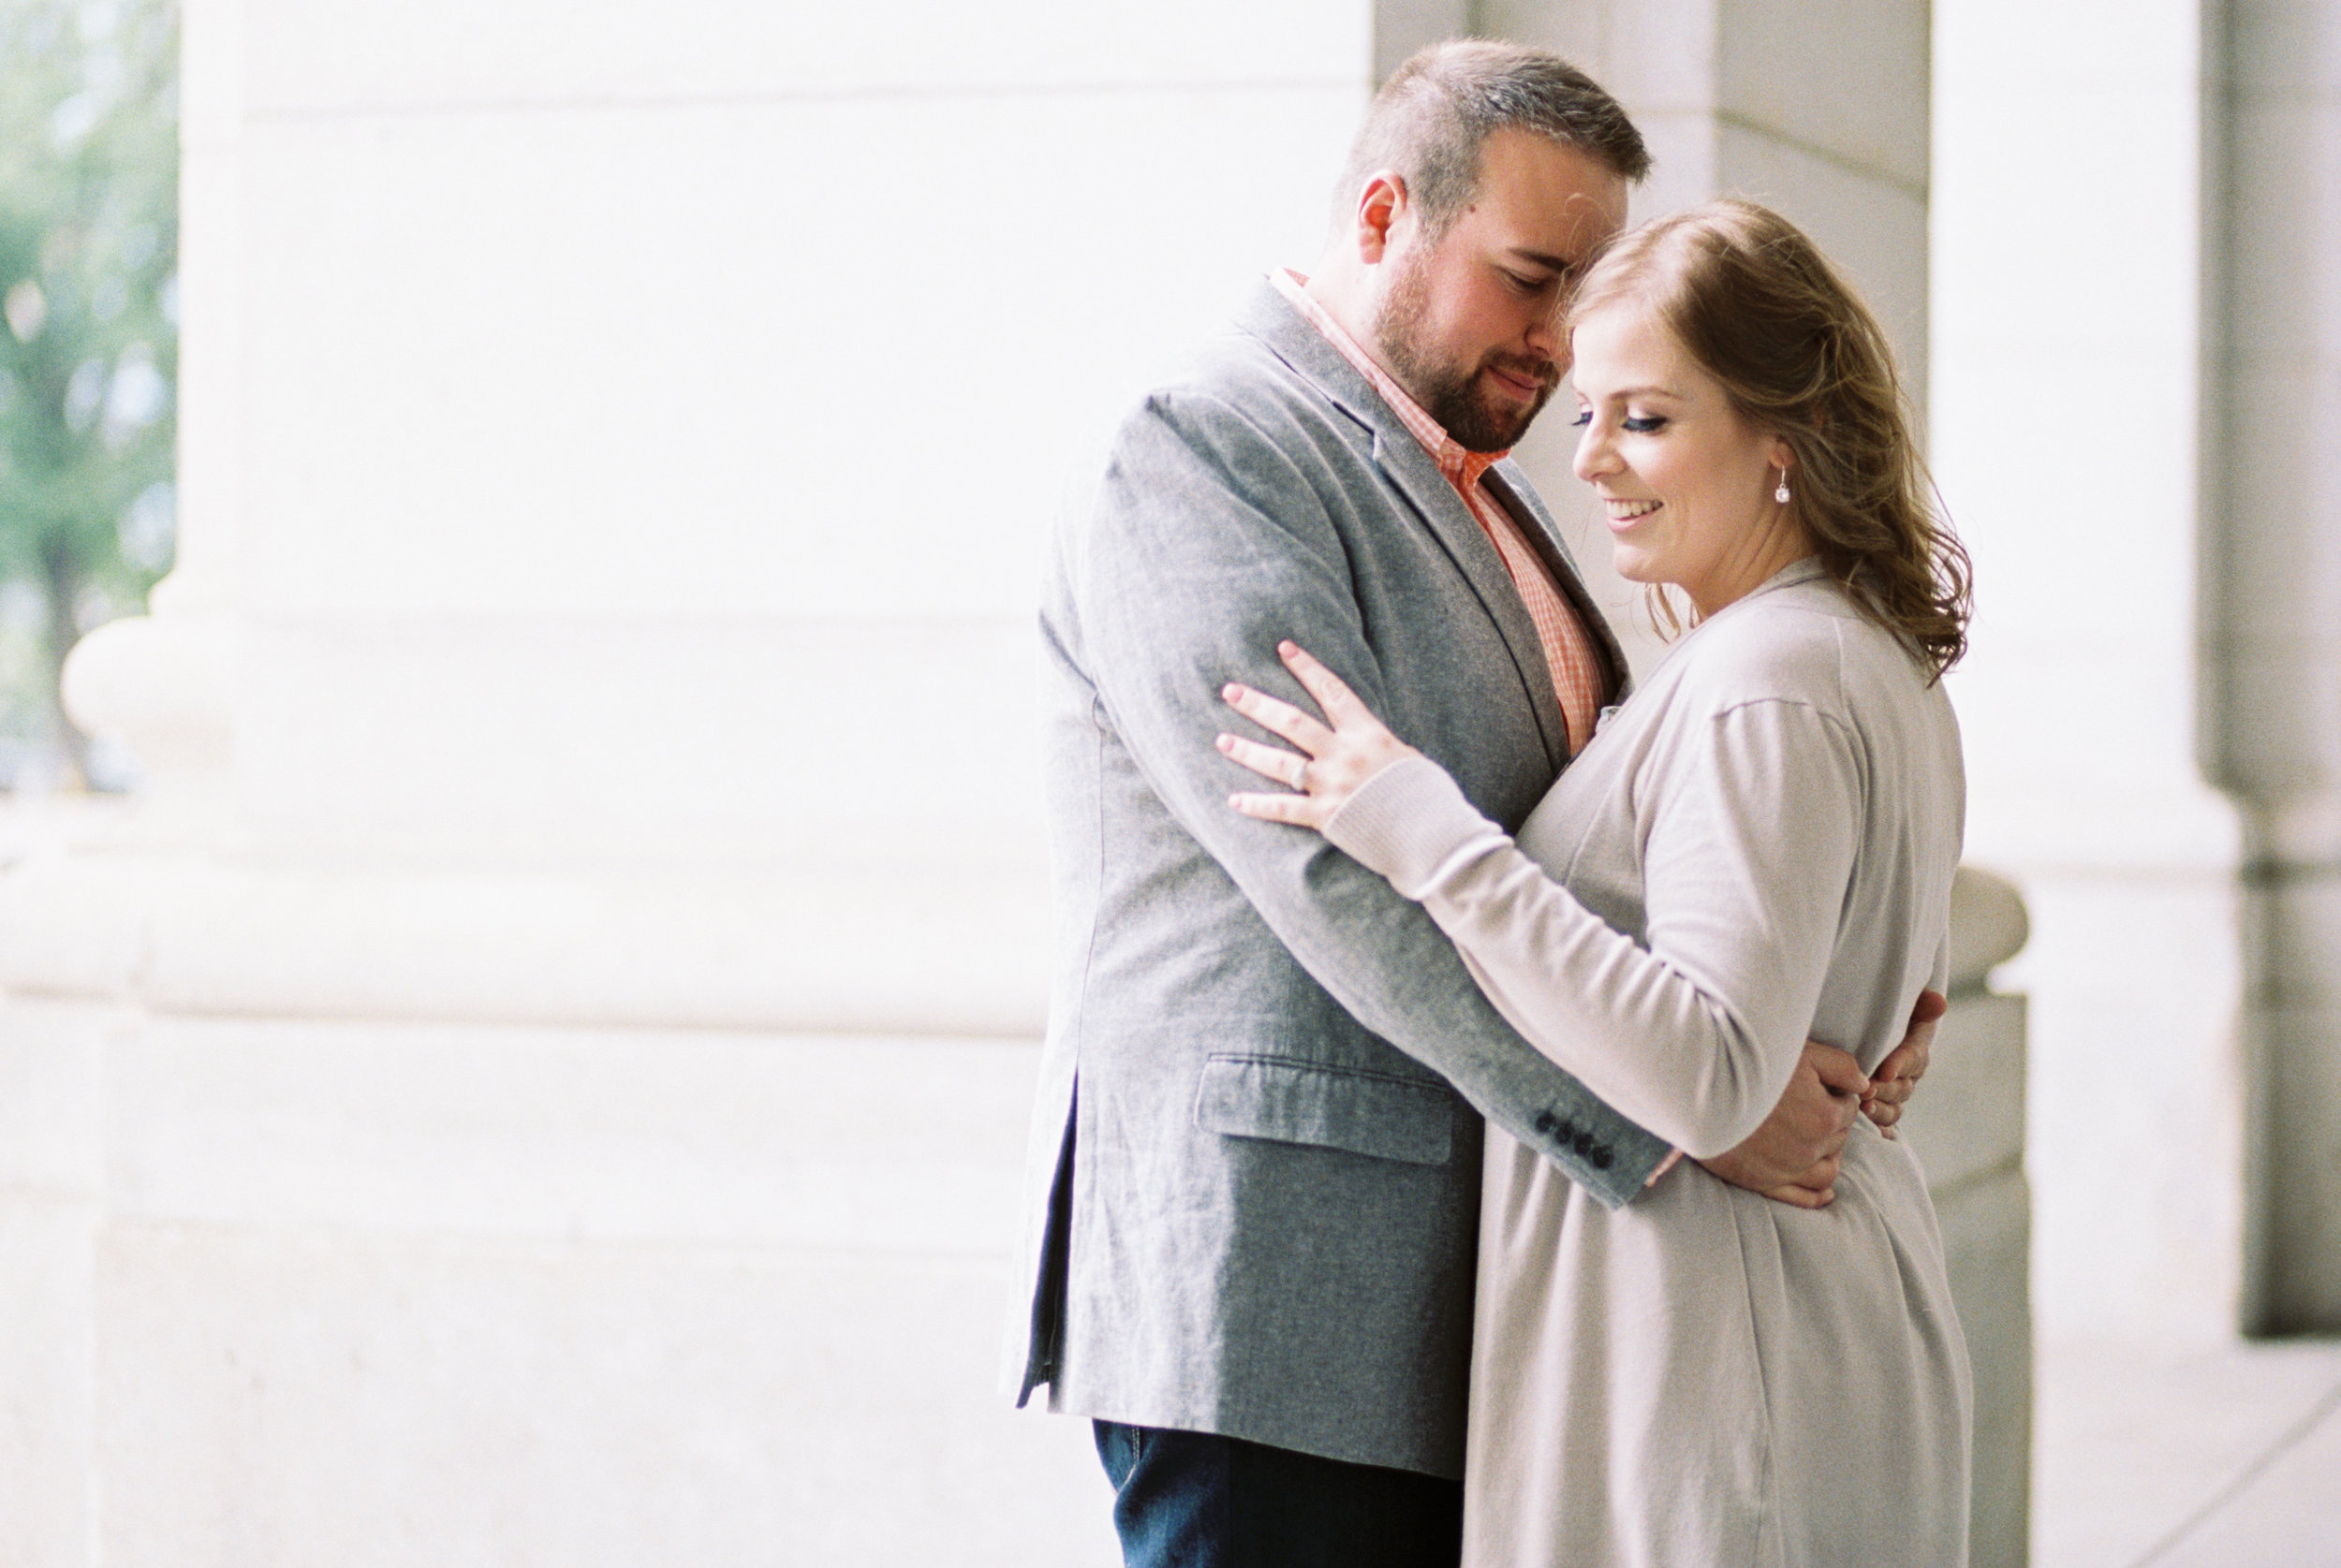 Union Station engagement session in DC